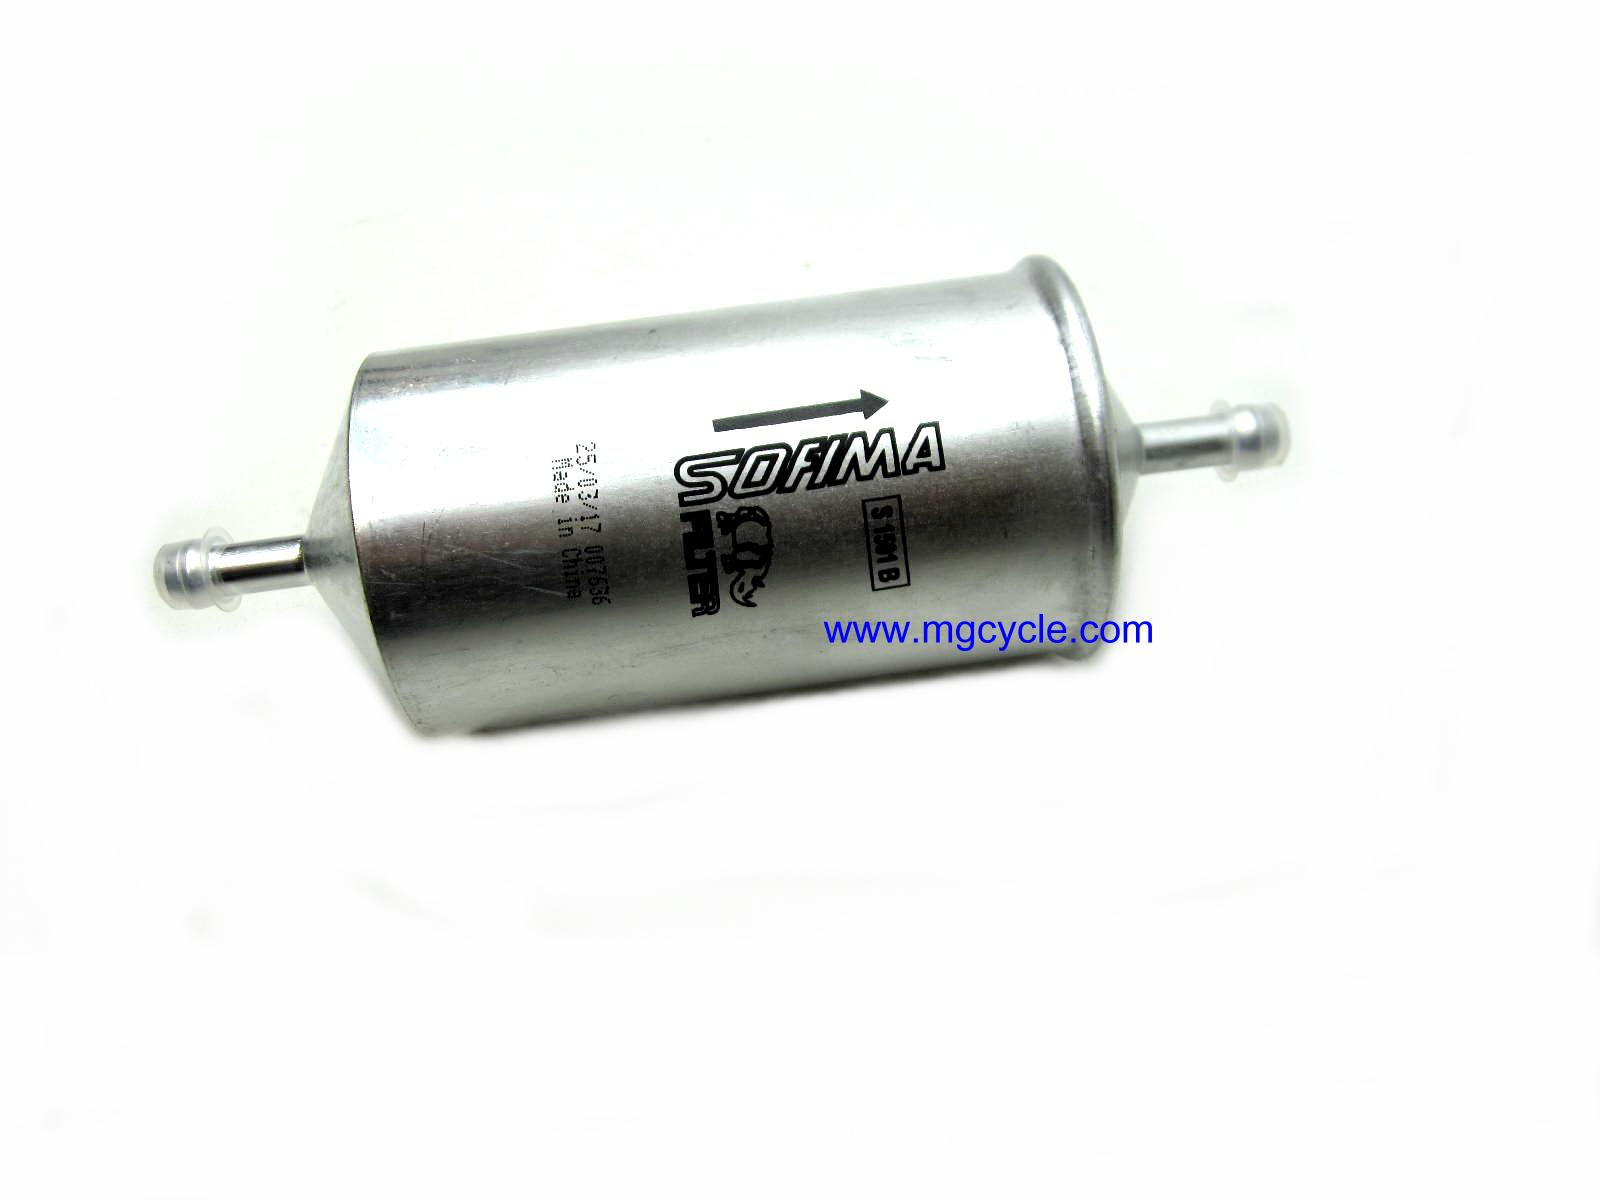 Fuel filter thru \'02 1100 Sport Centauro V11 Sport LeMans Quota